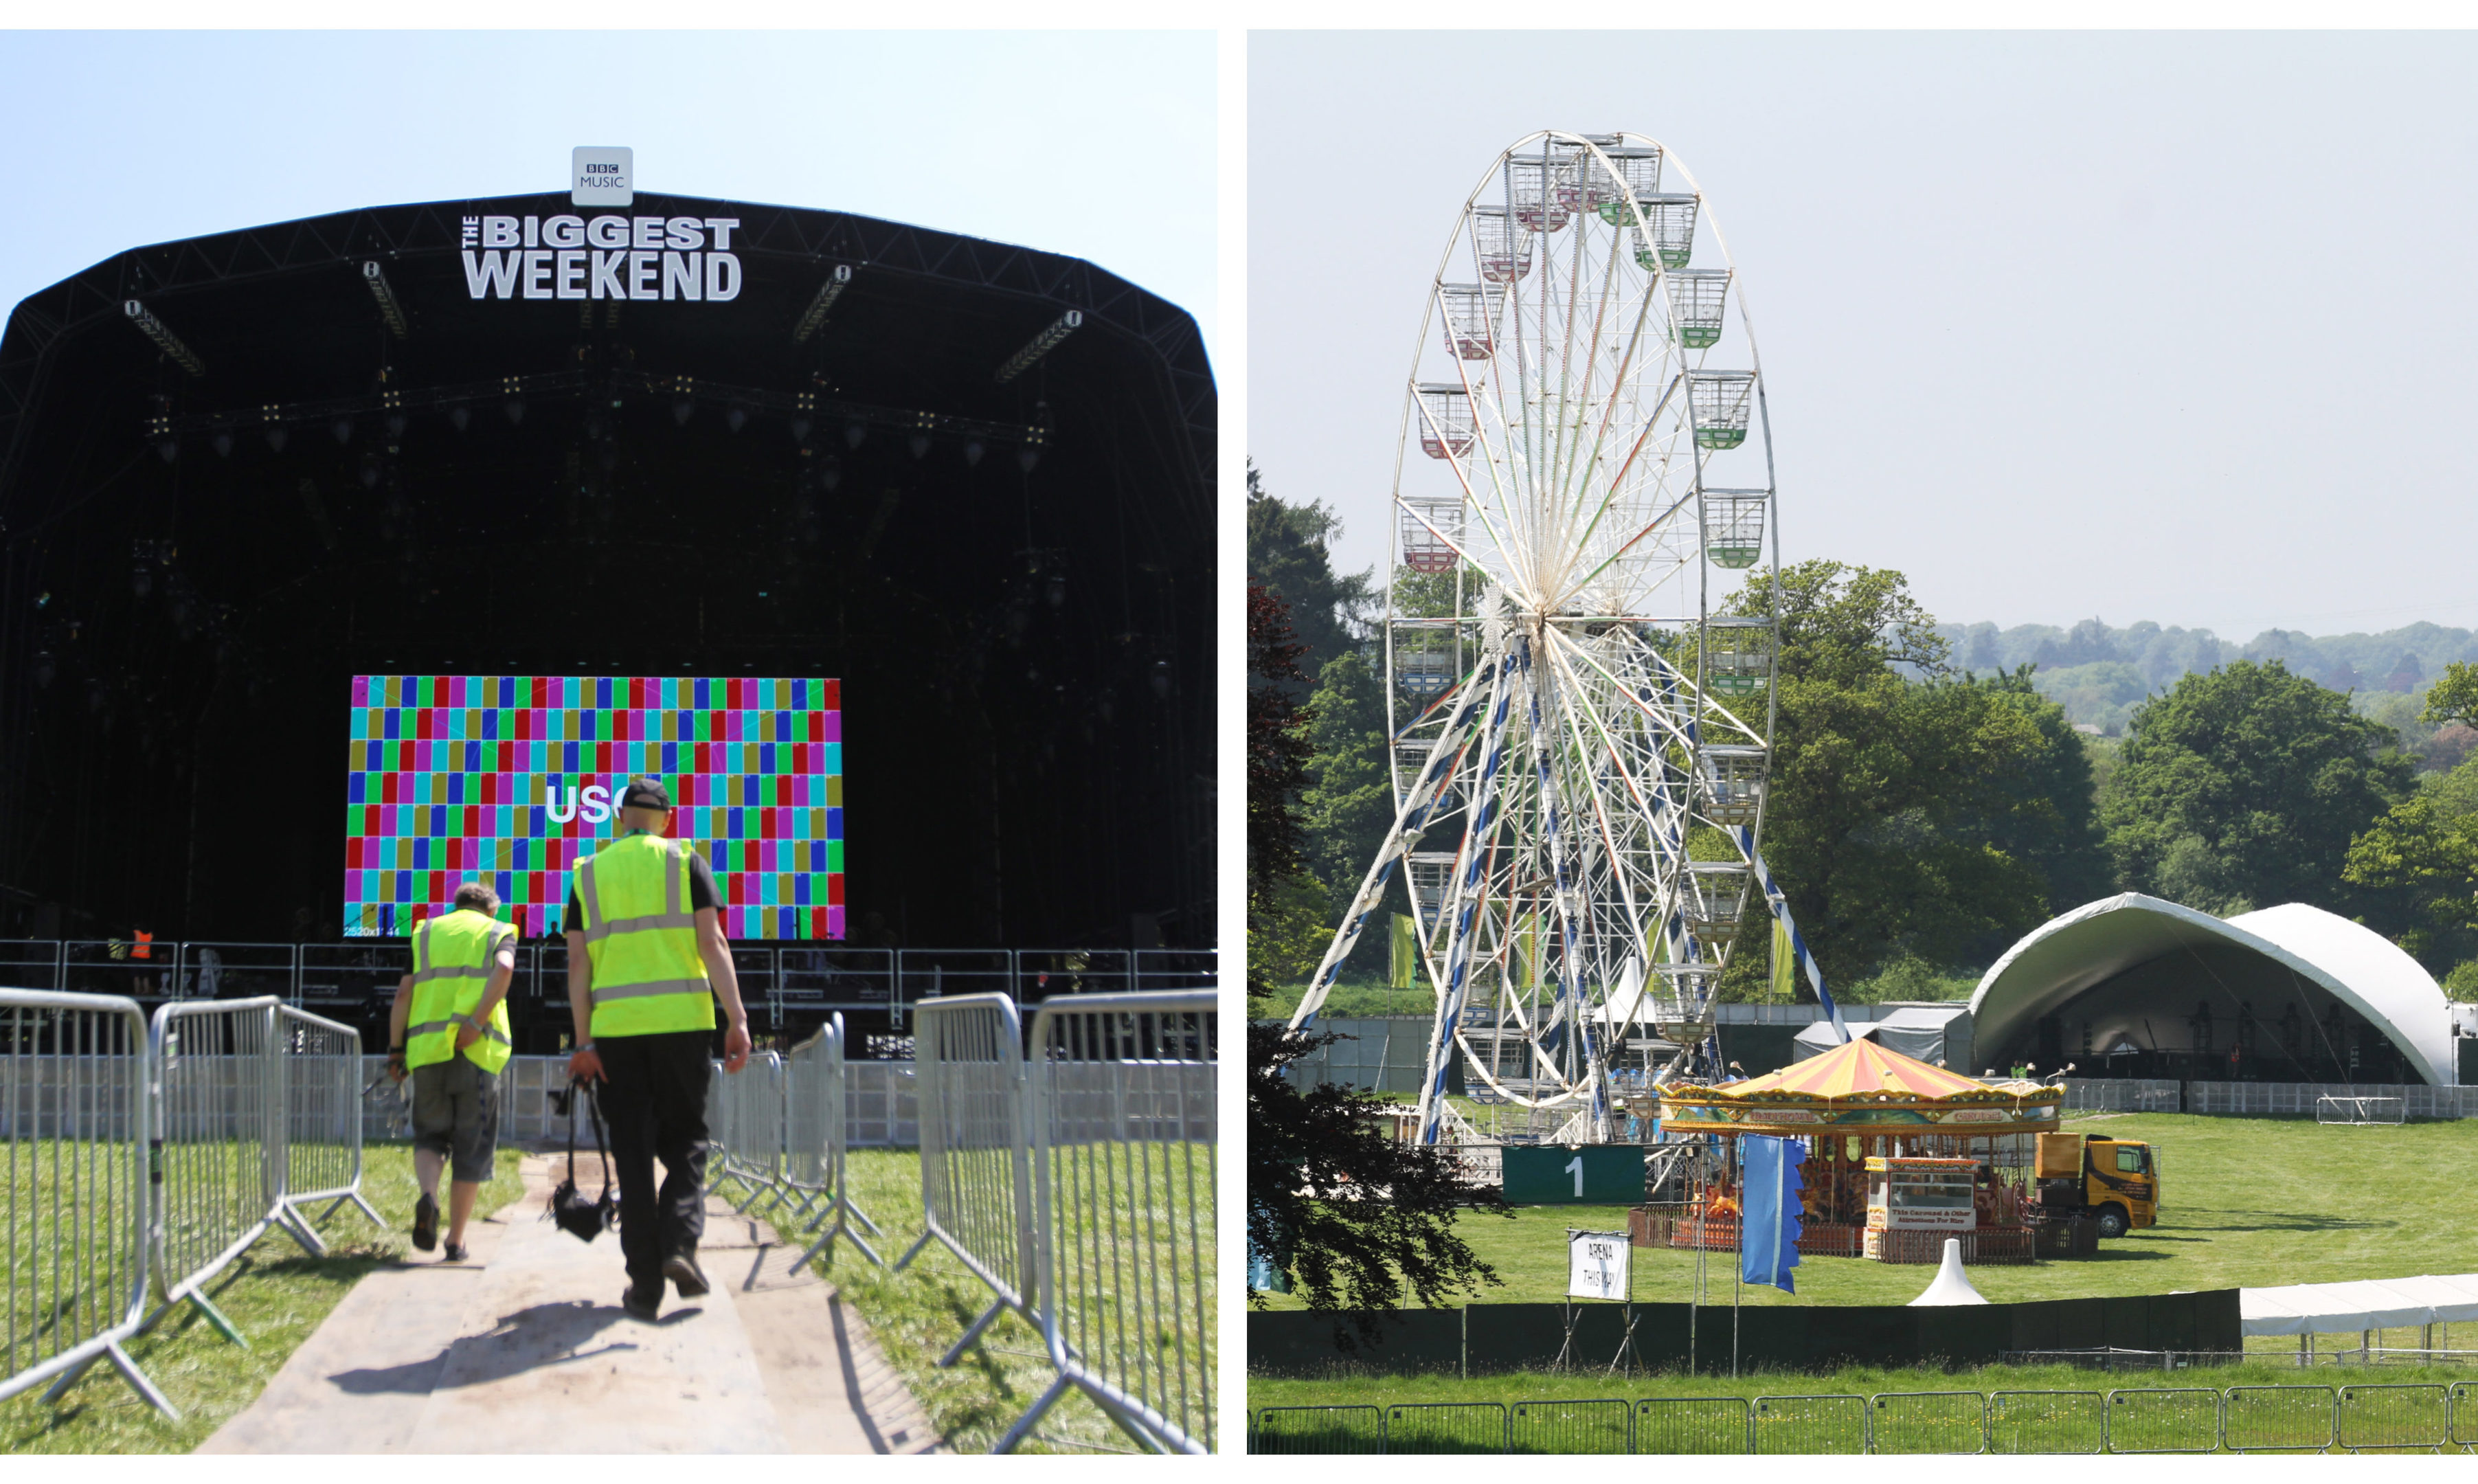 Scone Palace has been transformed for BBC's Biggest Weekend